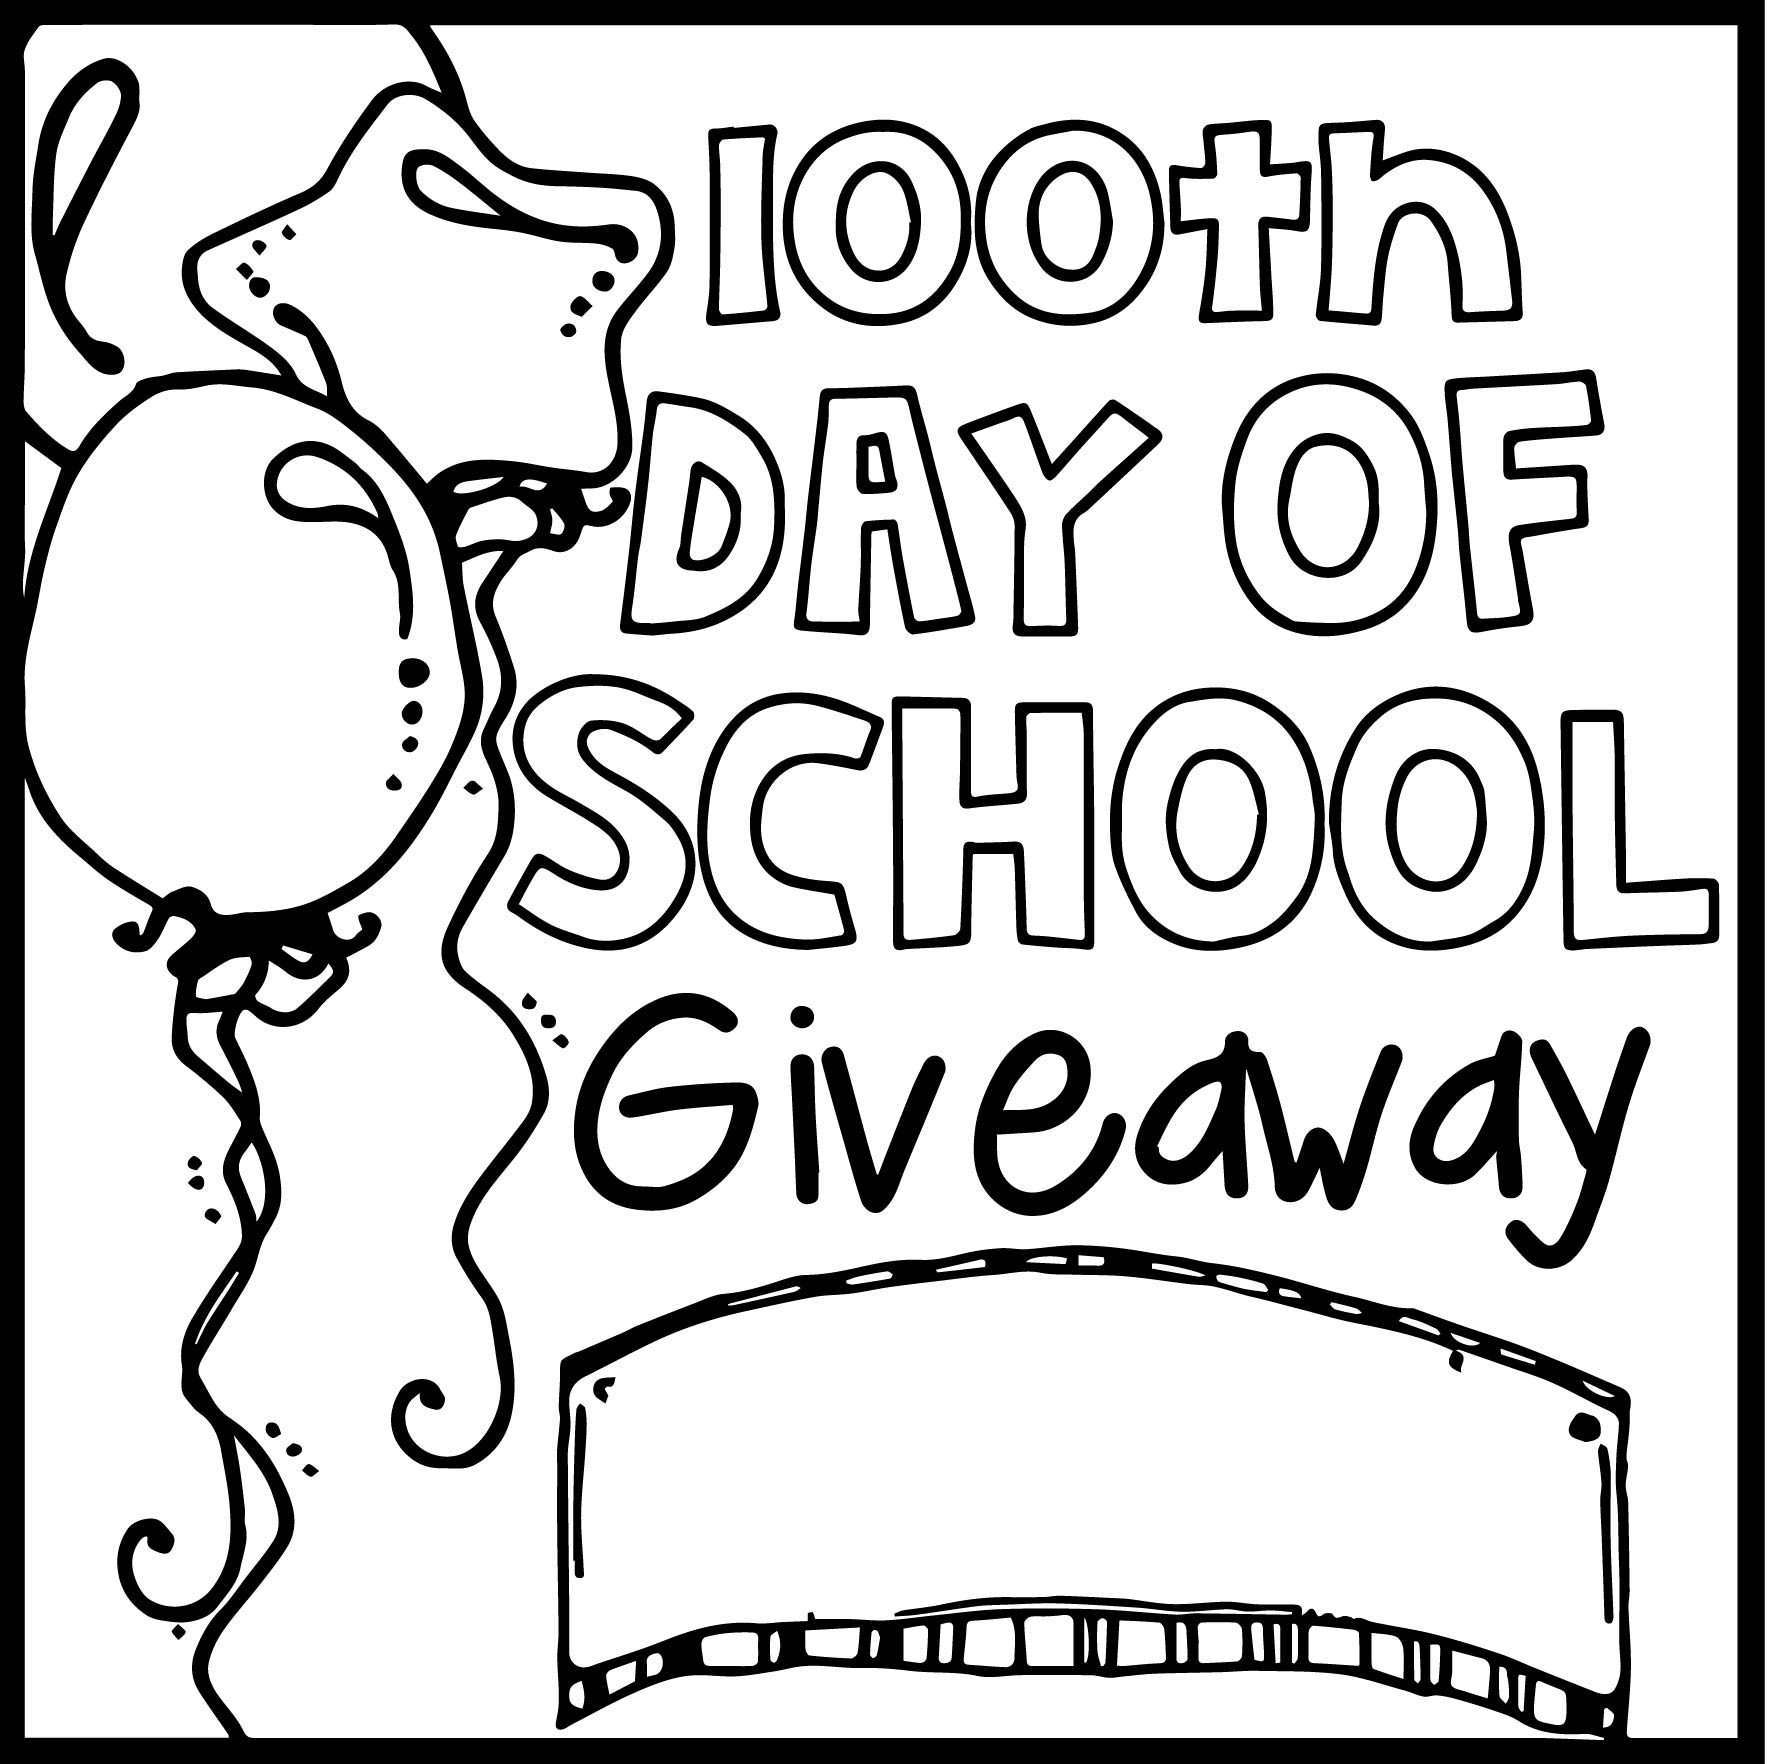 Classroom Ideas 100th Day Of School Giveaway Coloring Page